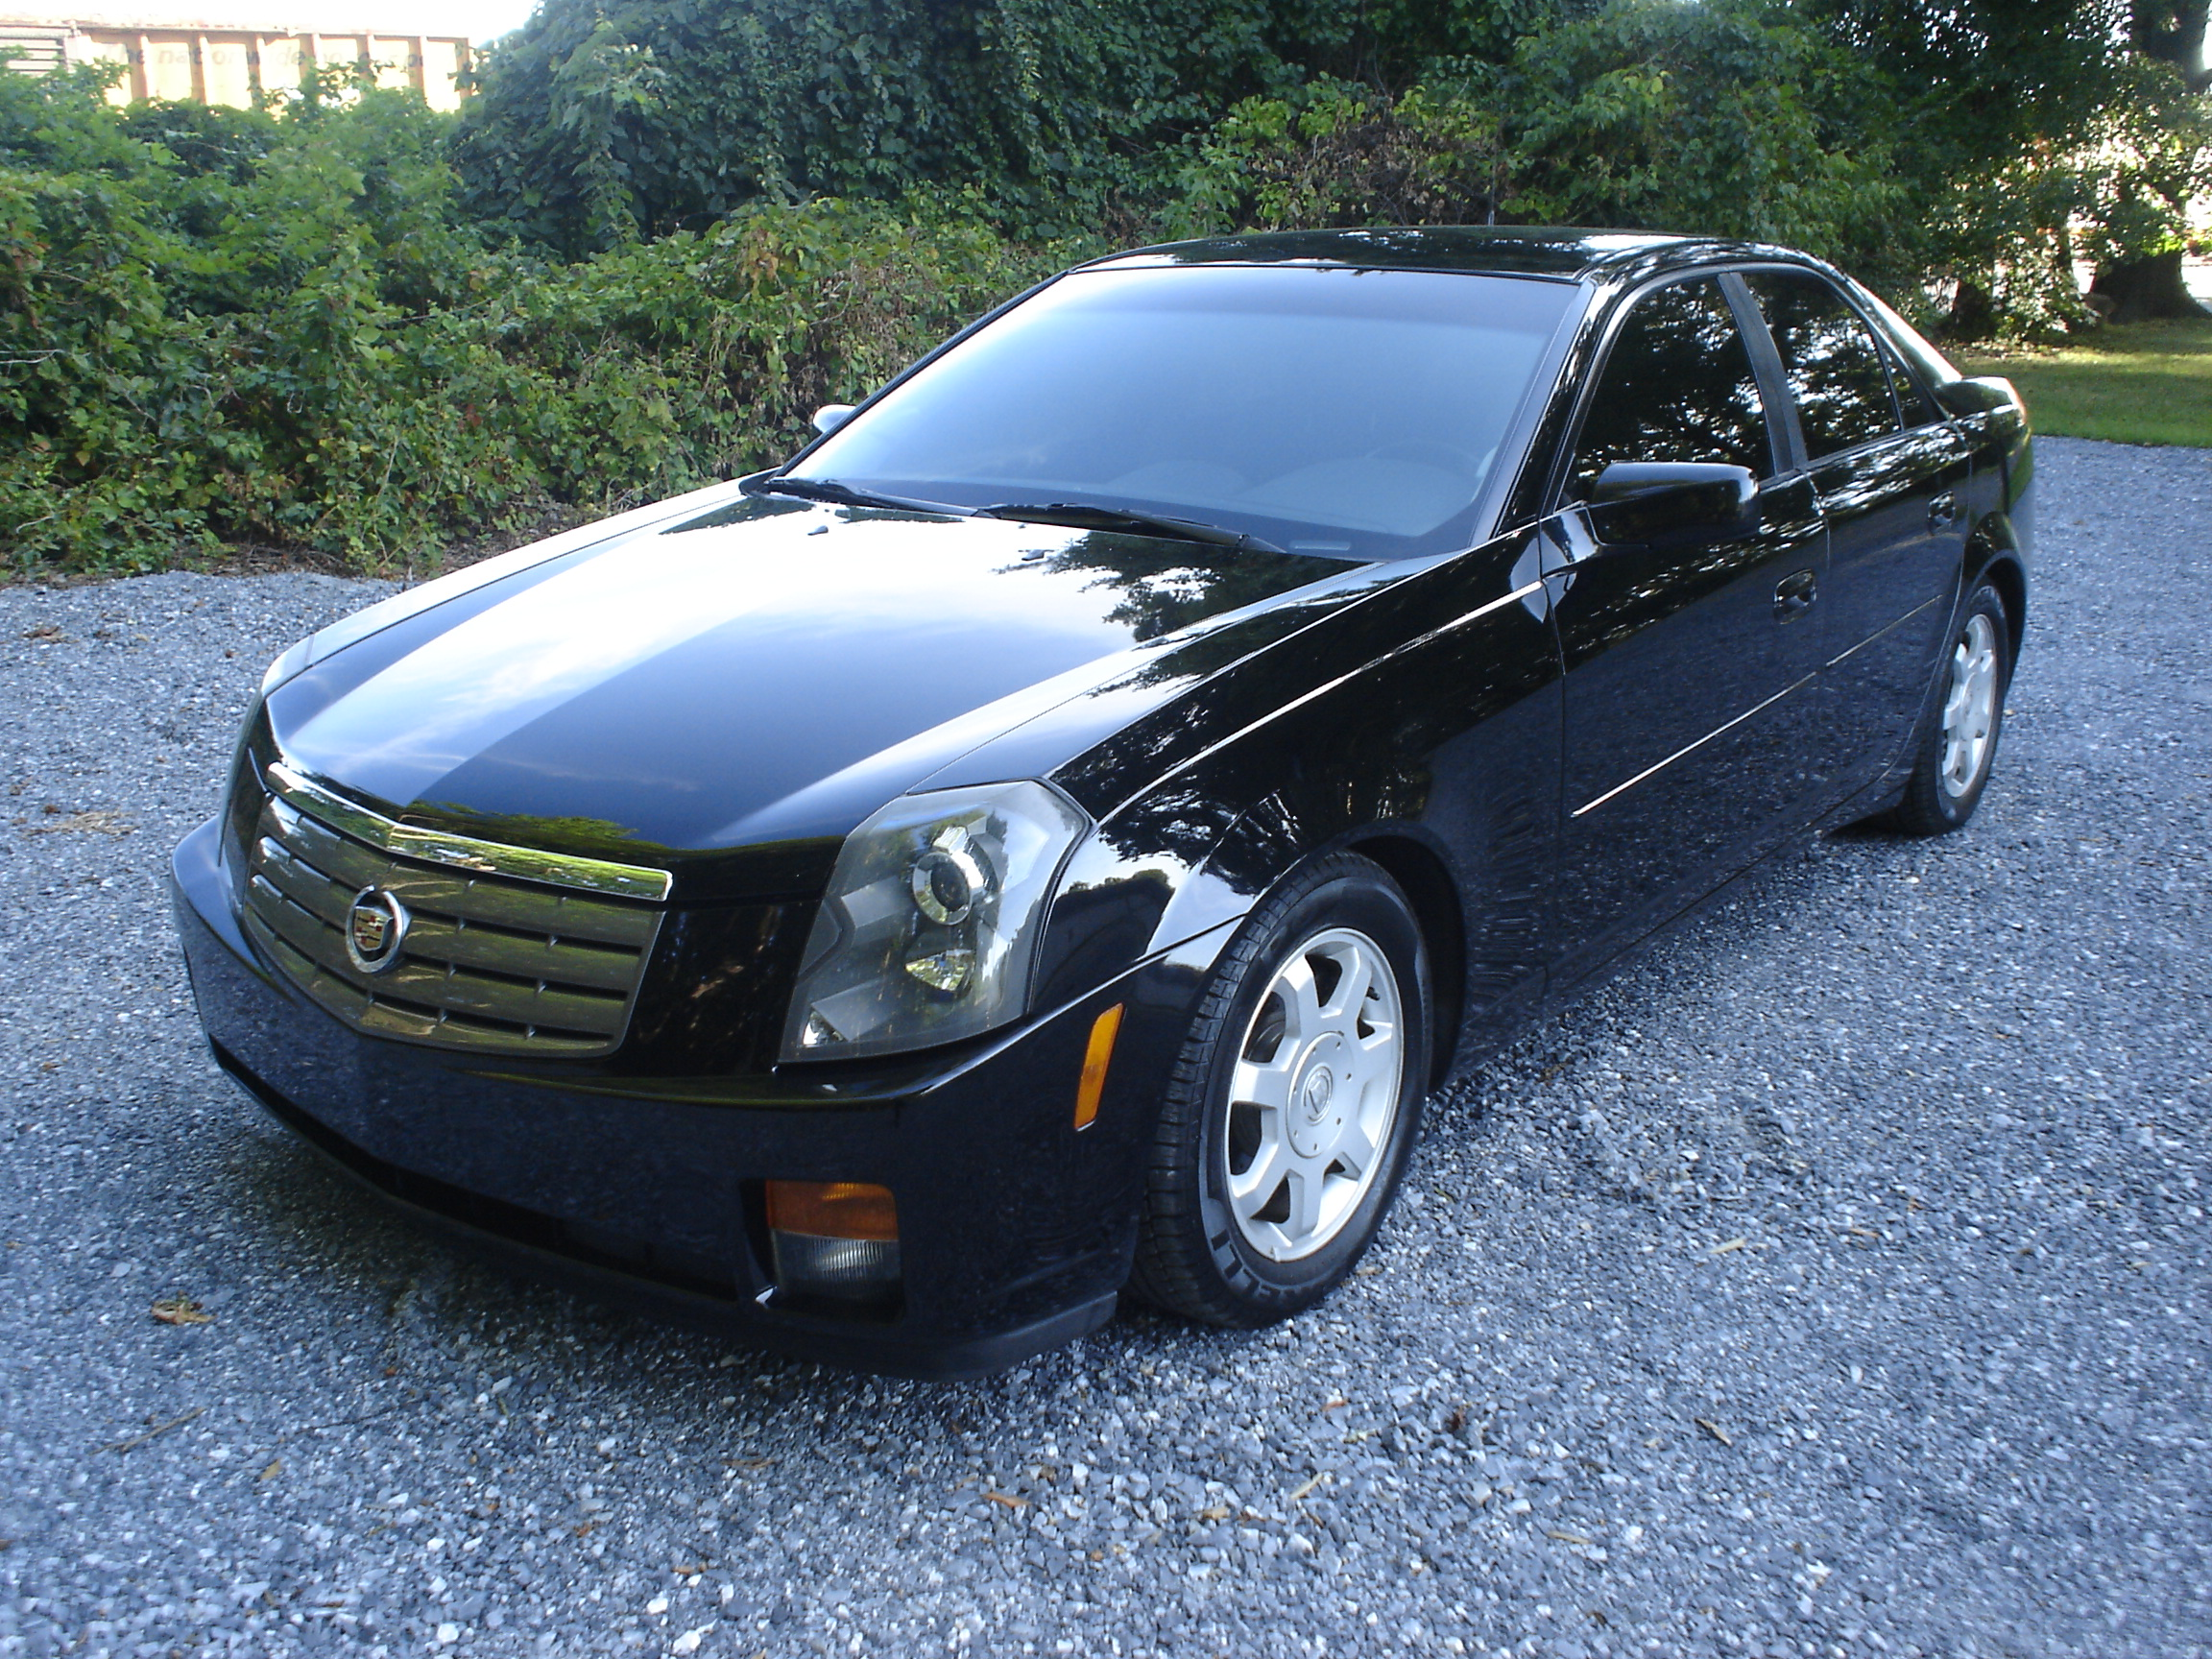 03 Cadillac CTS / With Air Ride | JJV Customs